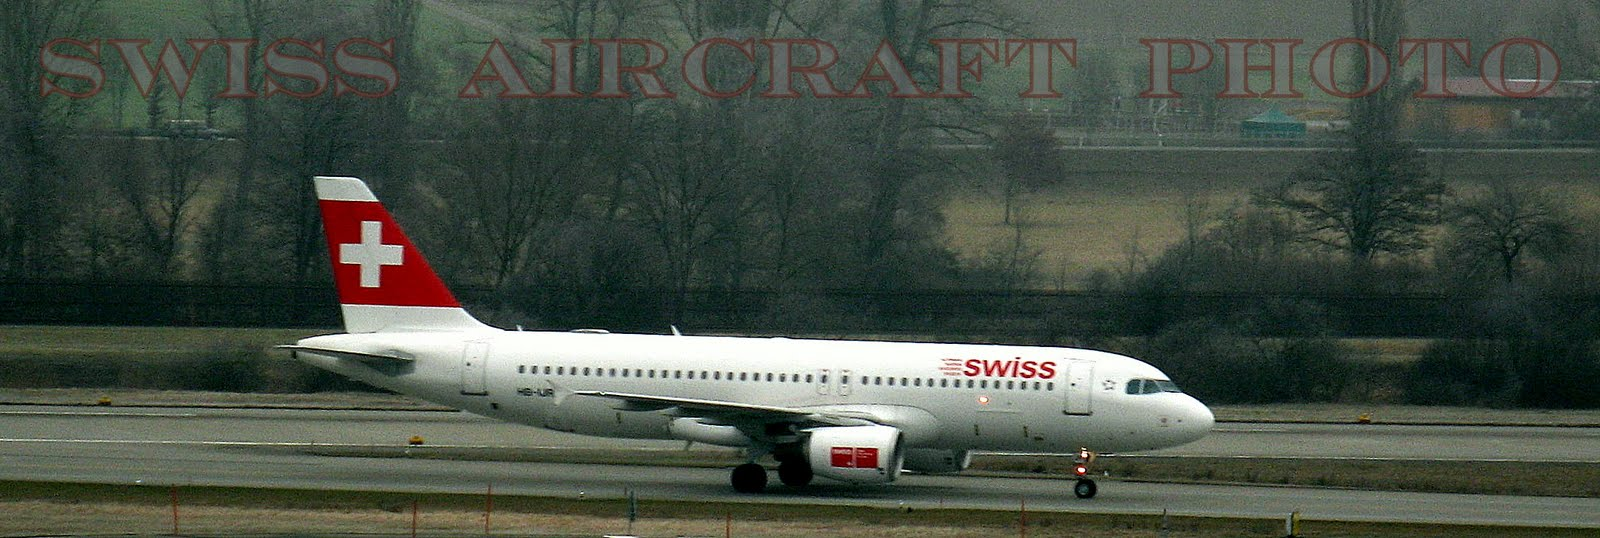 Swiss Aircraft Photos